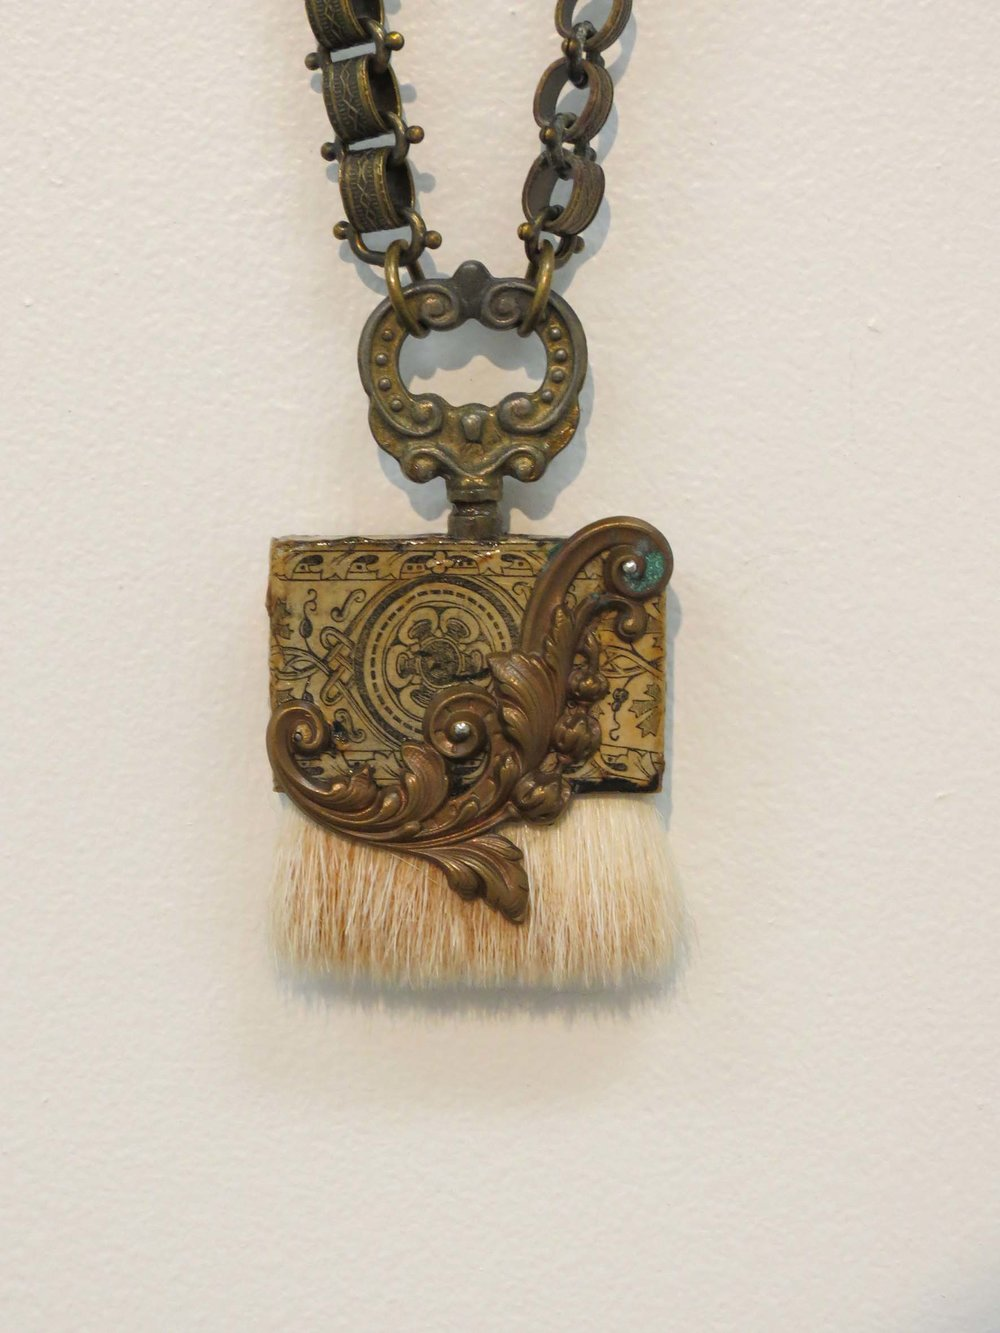 11. Kathy Aspinall, 'Brush II', 2018, wooden brush, clock key, brass, antique paper, book chain, necklace, $295